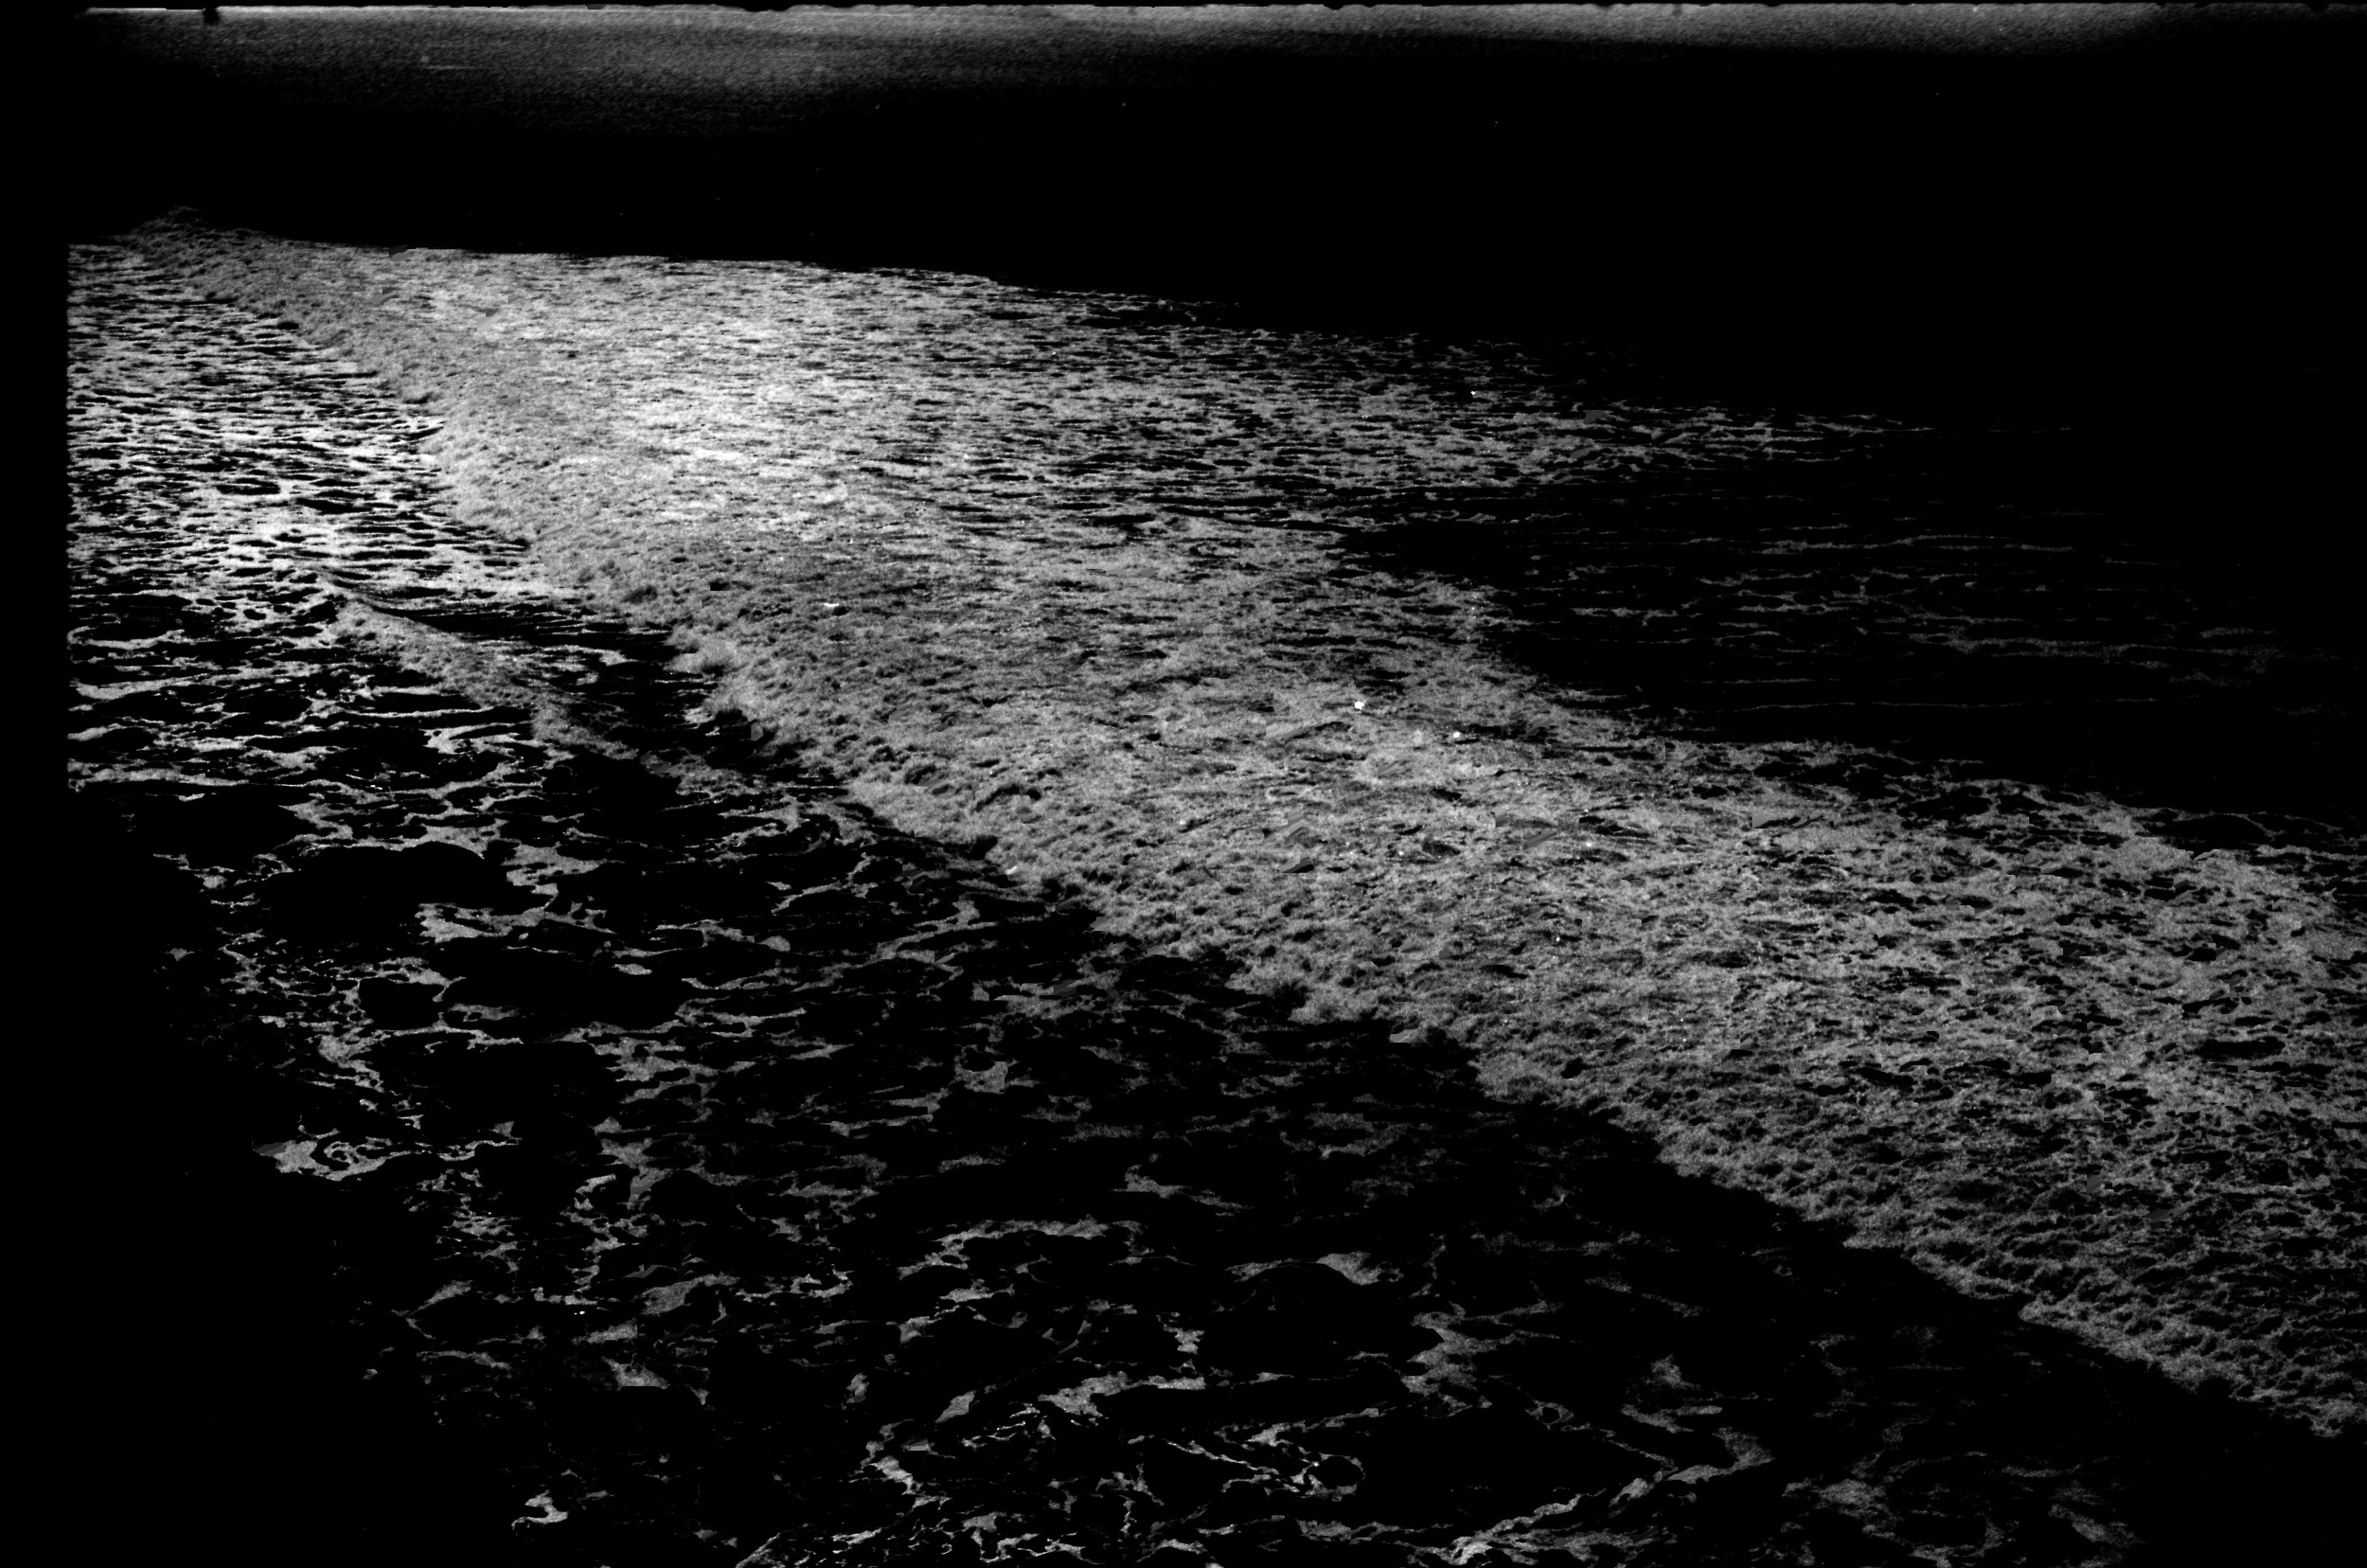 Baja waves in moonlight. From Walt Girdner's Mexico collection.